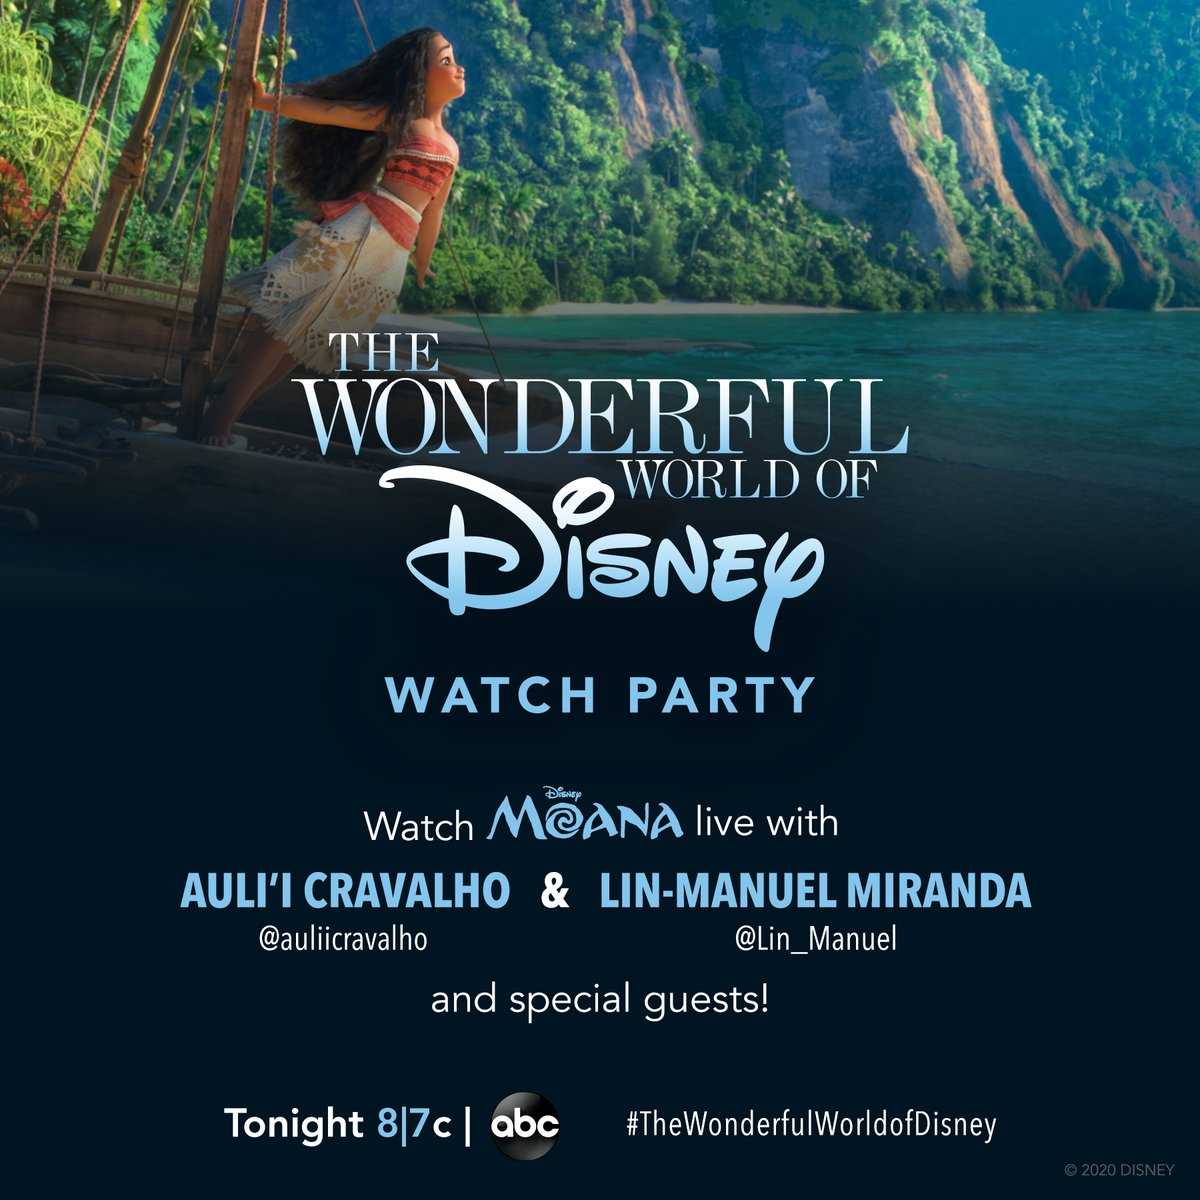 Journey beyond the reef and join @auliicravalho, @lin_manuel, and more special guests as we tweet along to the East Coast airing of #Moana on @ABCNetwork's #TheWonderfulWorldofDisney! Tune in TONIGHT at 8l7c!